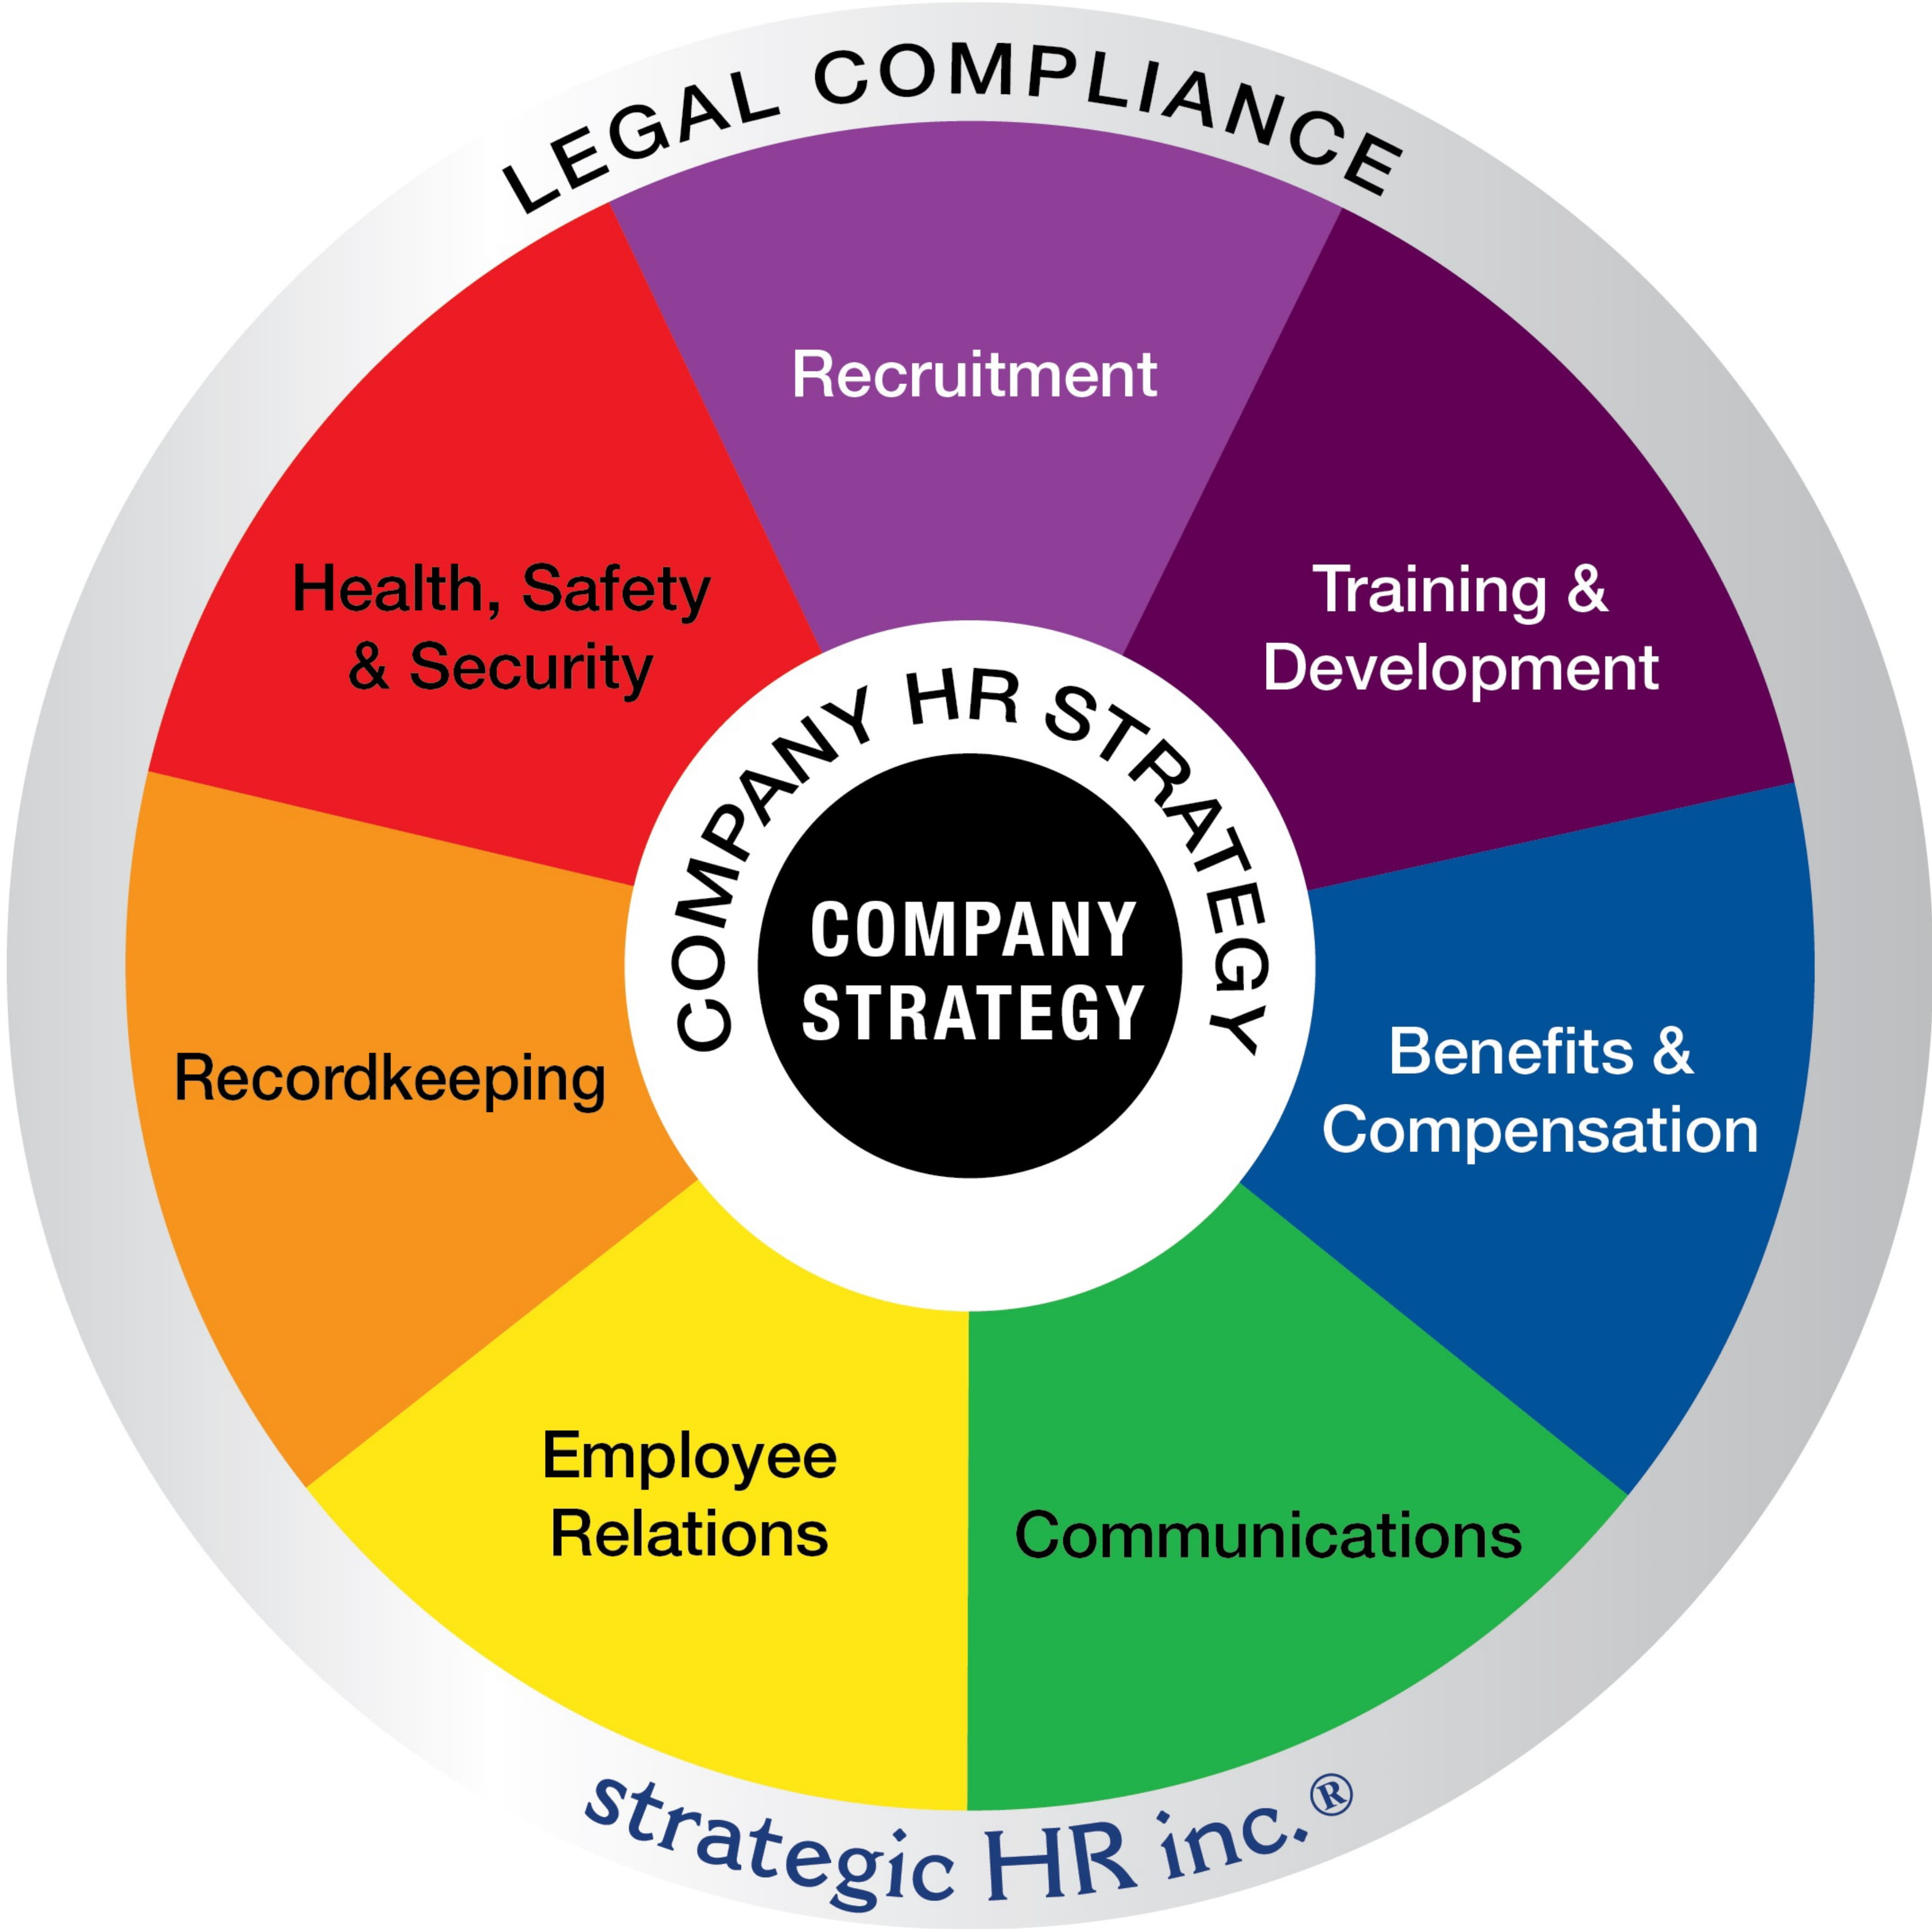 Image - strategic HR inc. wheel of HR Services